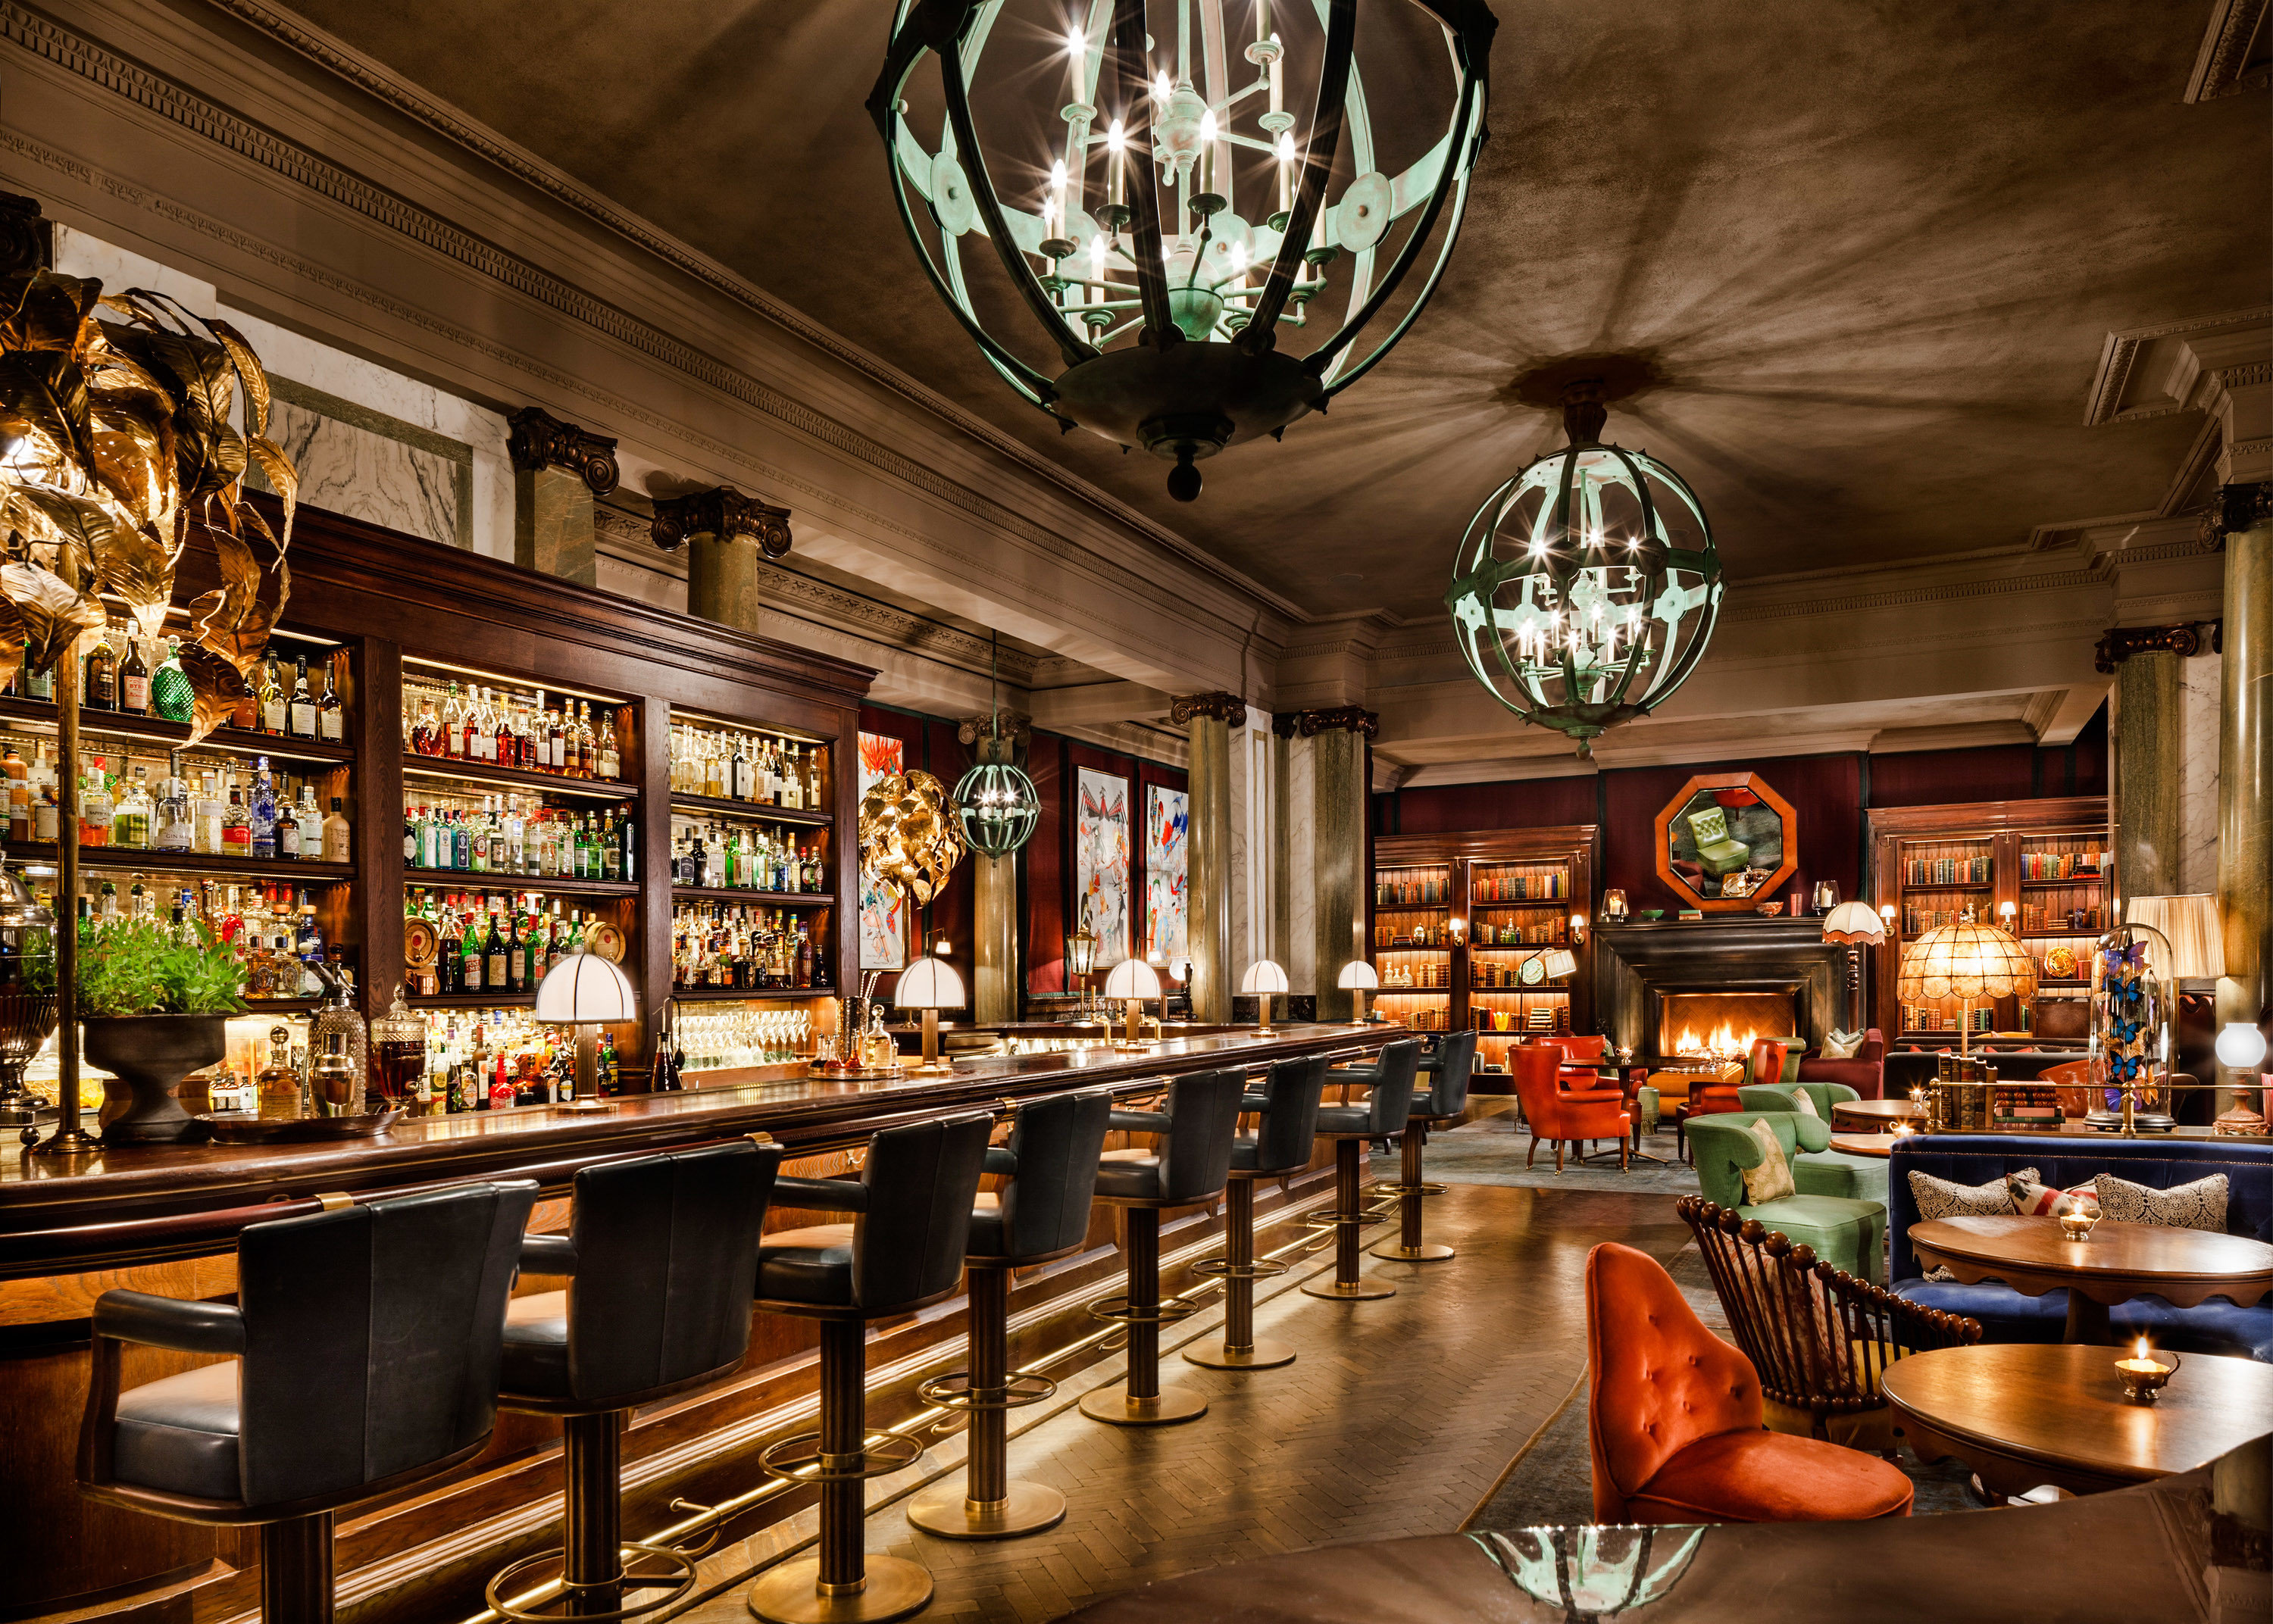 Food + Drink Trip Ideas indoor ceiling Bar interior design store restaurant pub tavern several